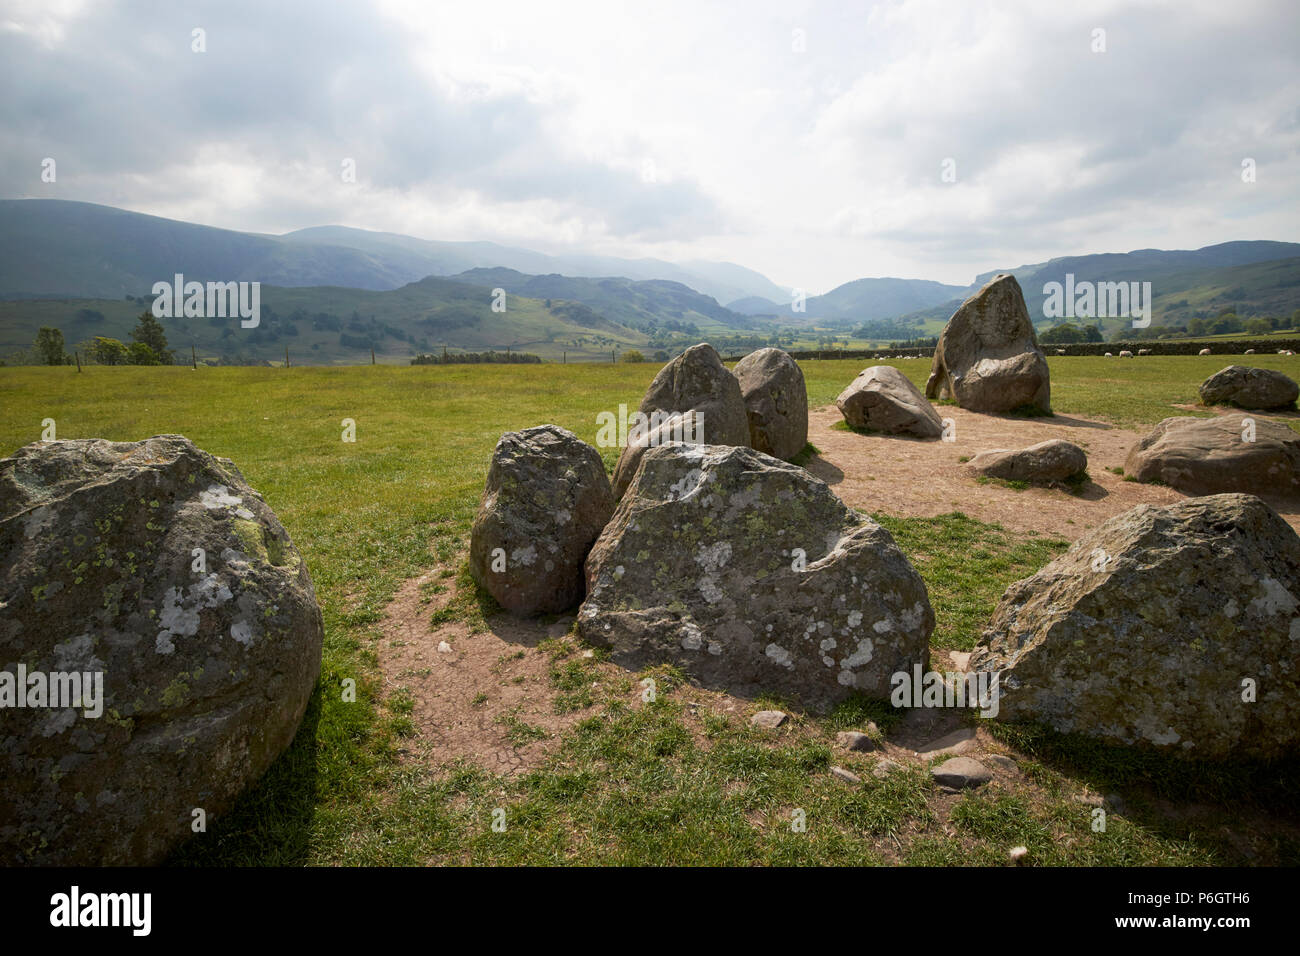 inner rectangle of square of standing stones called the sanctuary in castlerigg stone circle cumbria england uk - Stock Image